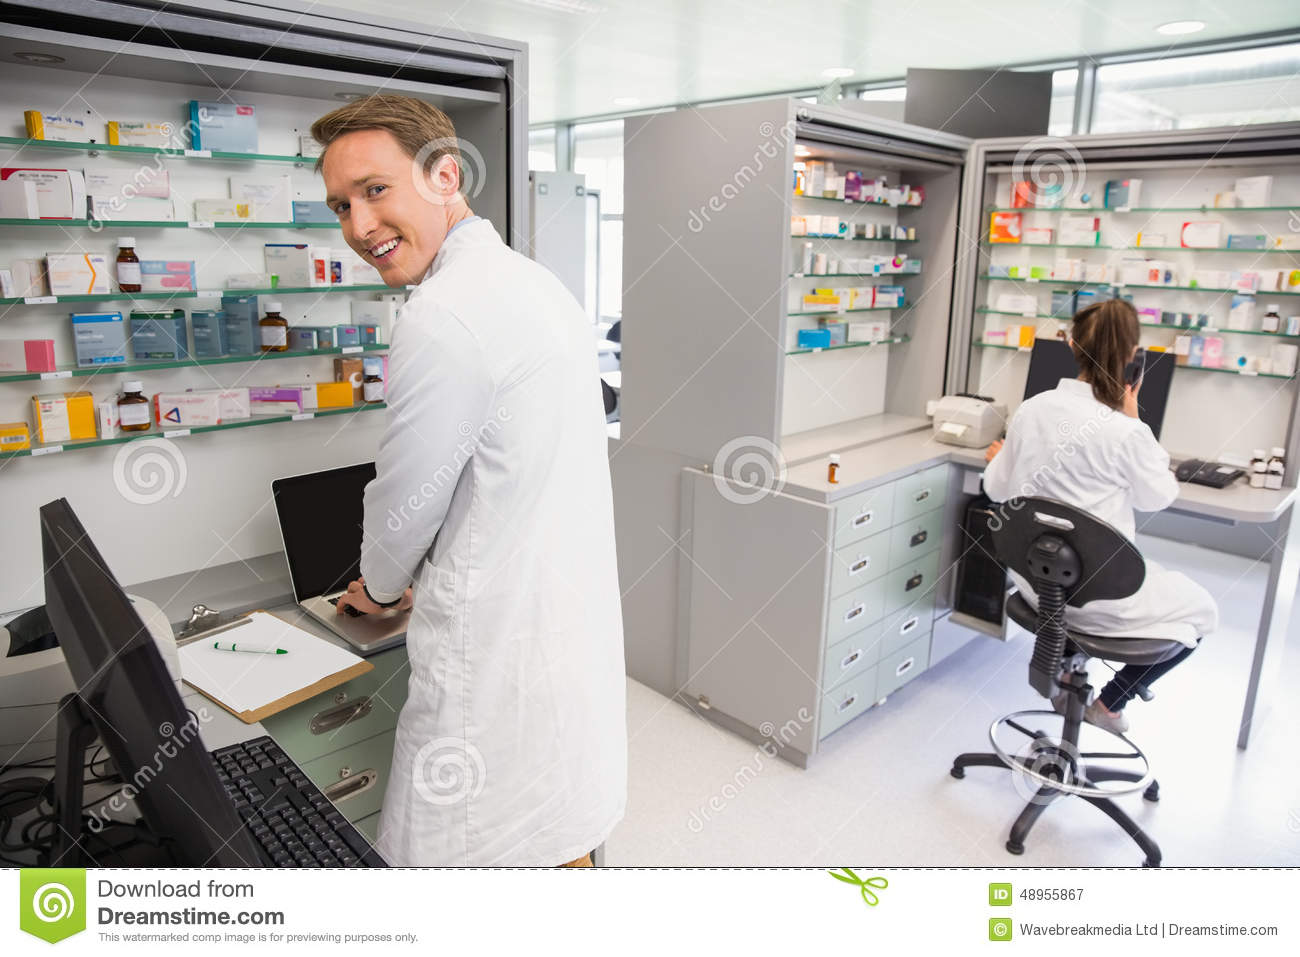 Welcome to West-Val Pharmacy